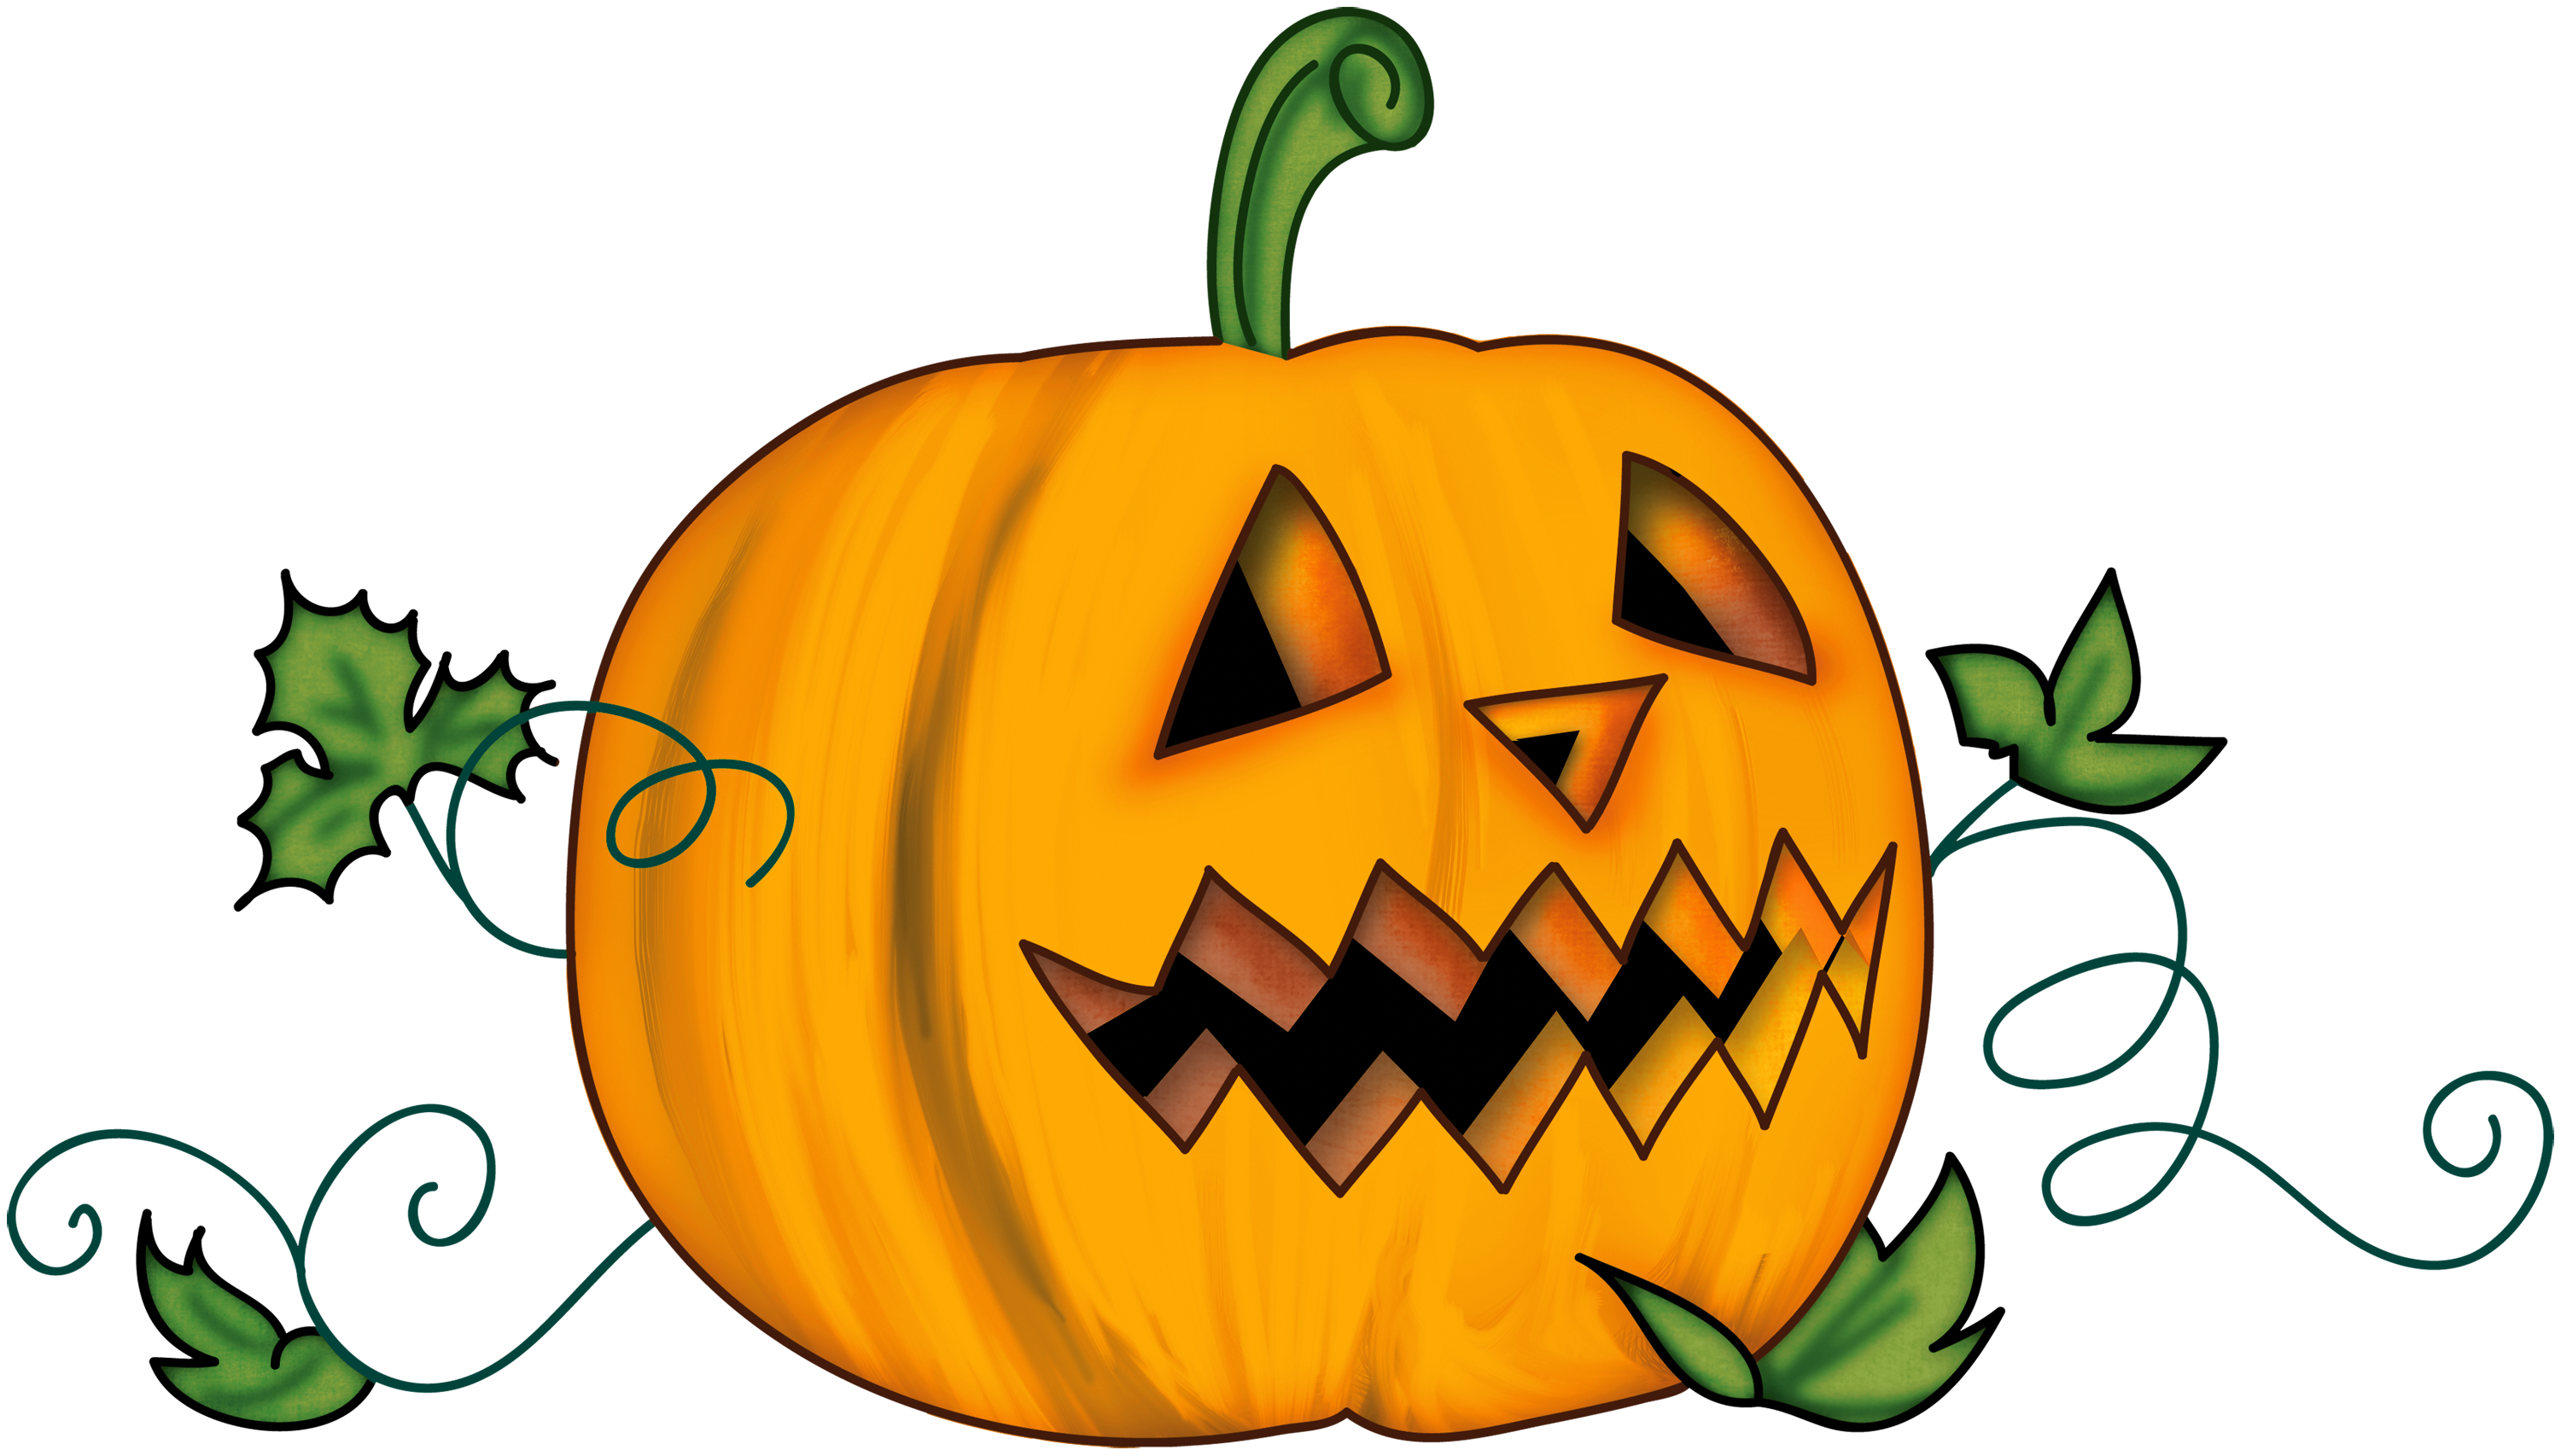 Happy halloween pumpkin clipart image library download Free Pumpkin Clipart at GetDrawings.com | Free for personal use Free ... image library download